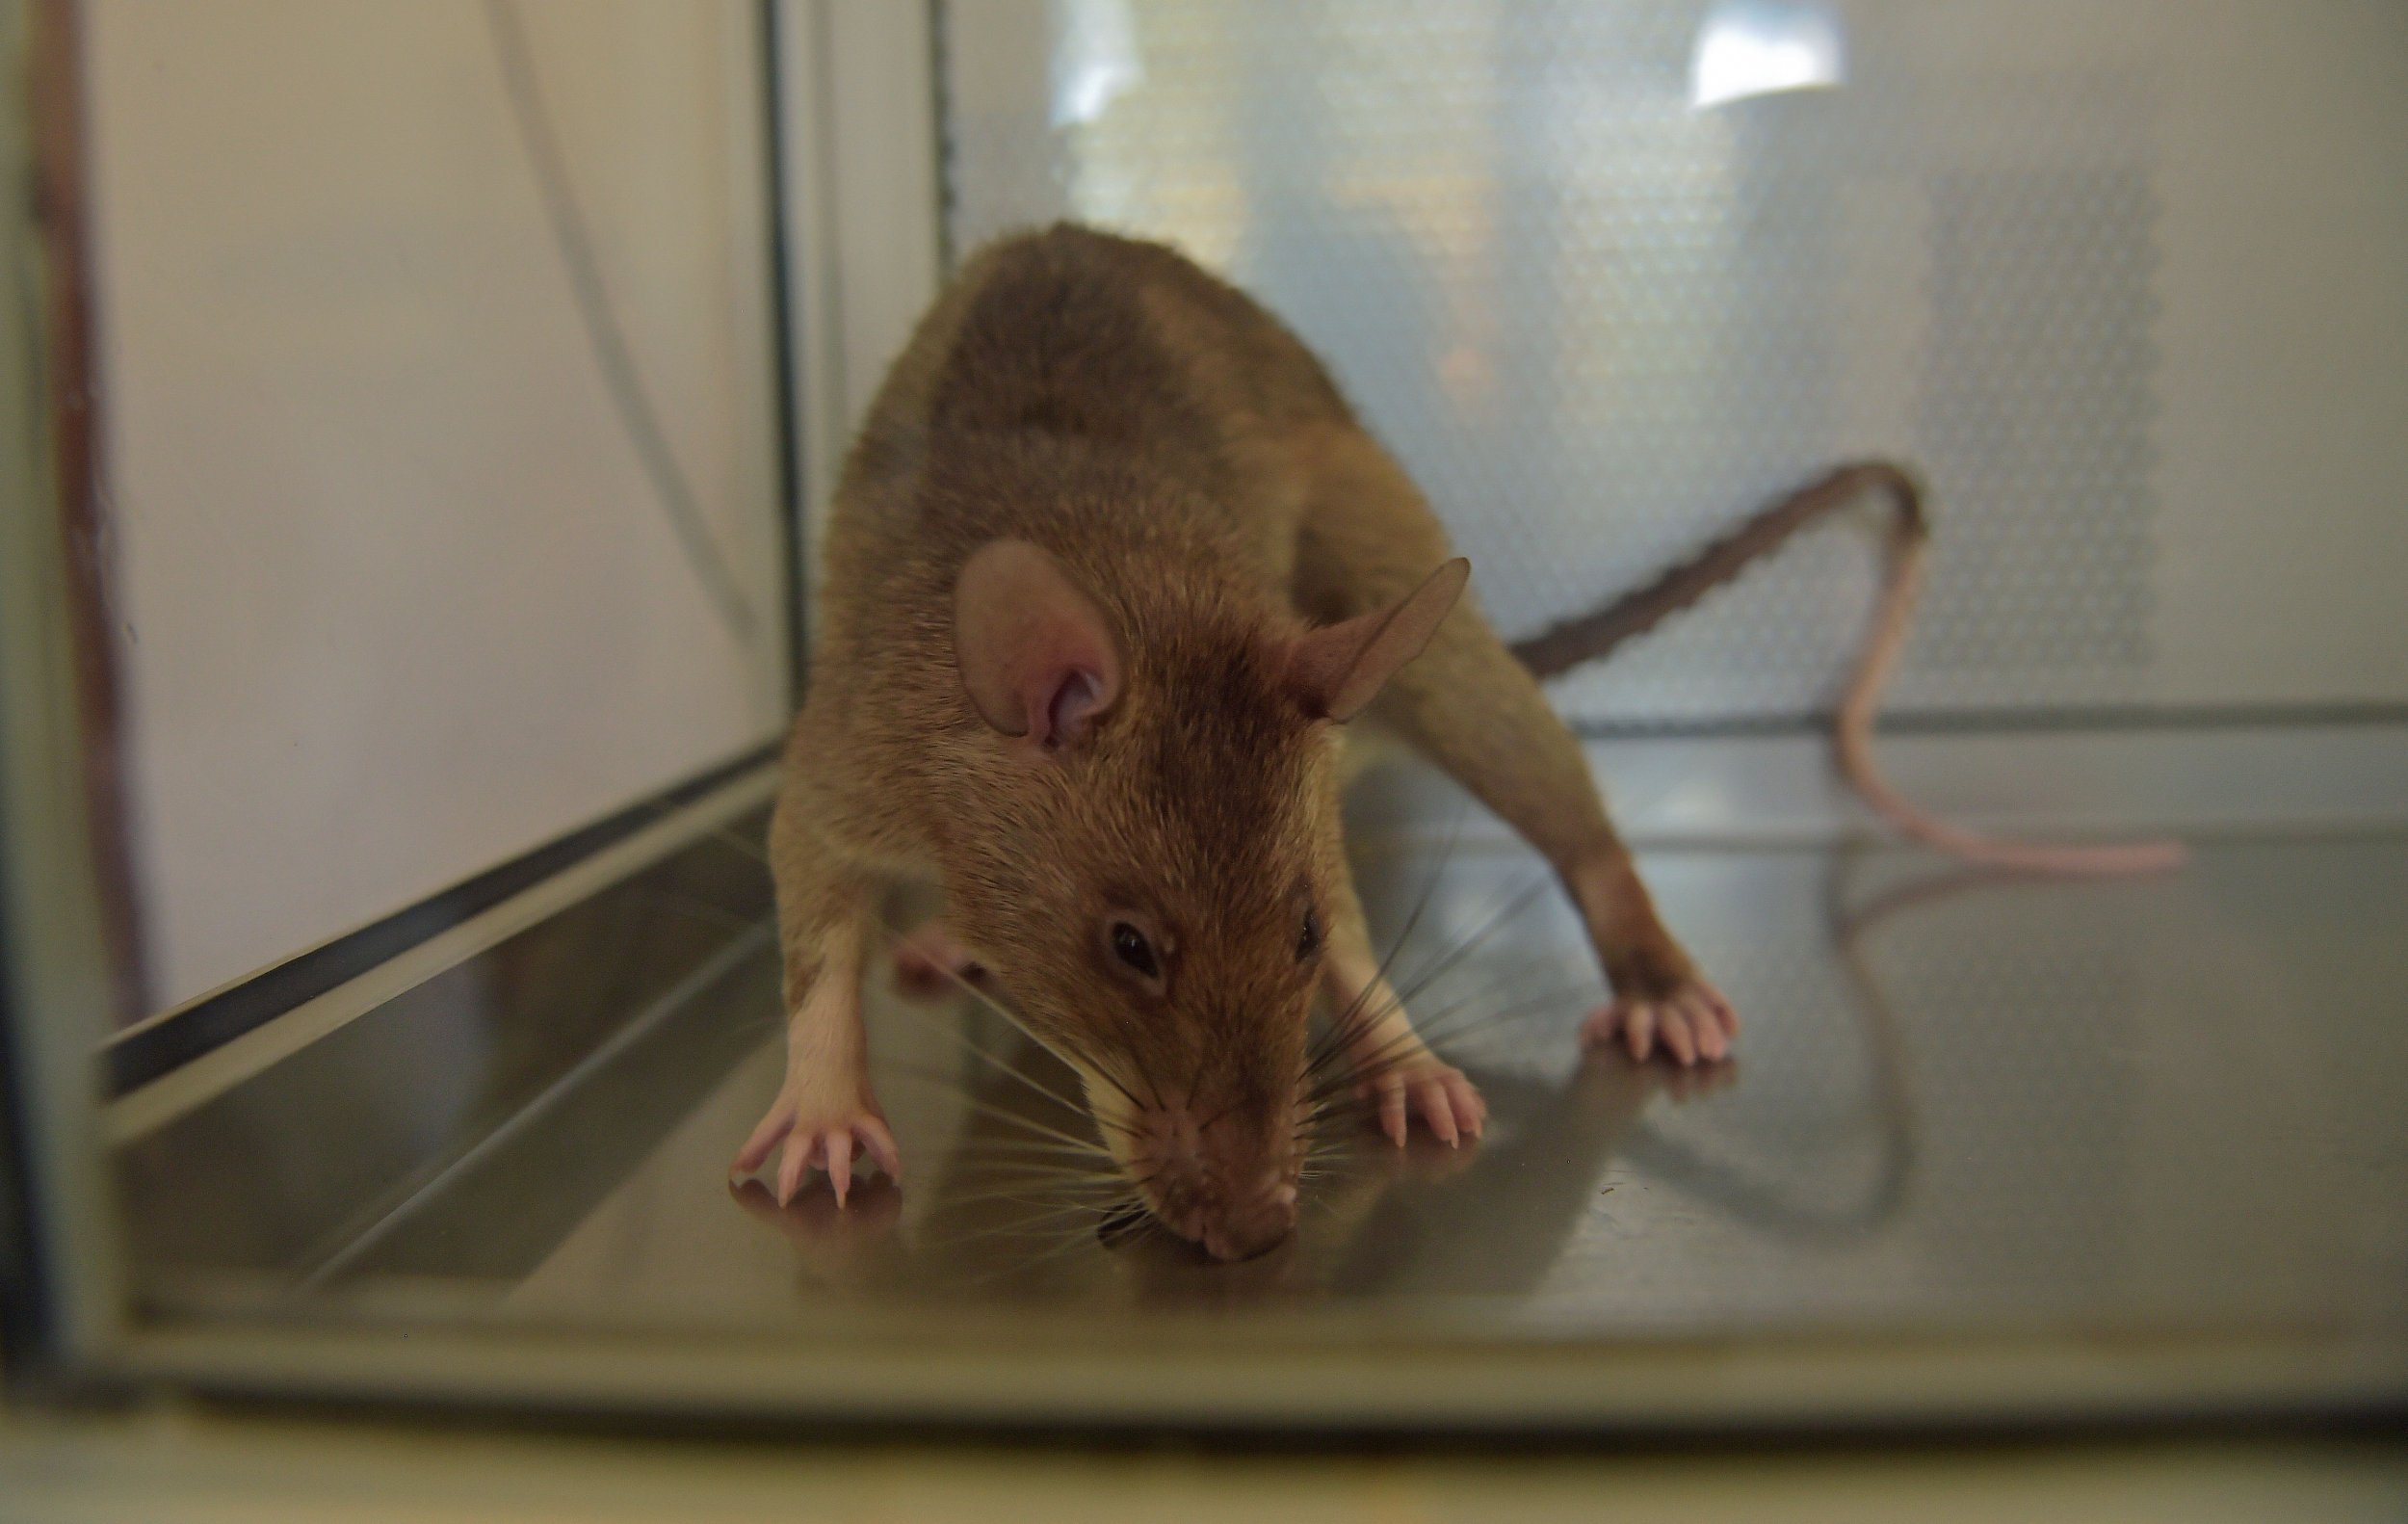 Scientists are using rats to sniff out deadly disease in children with greater accuracy than standard tests